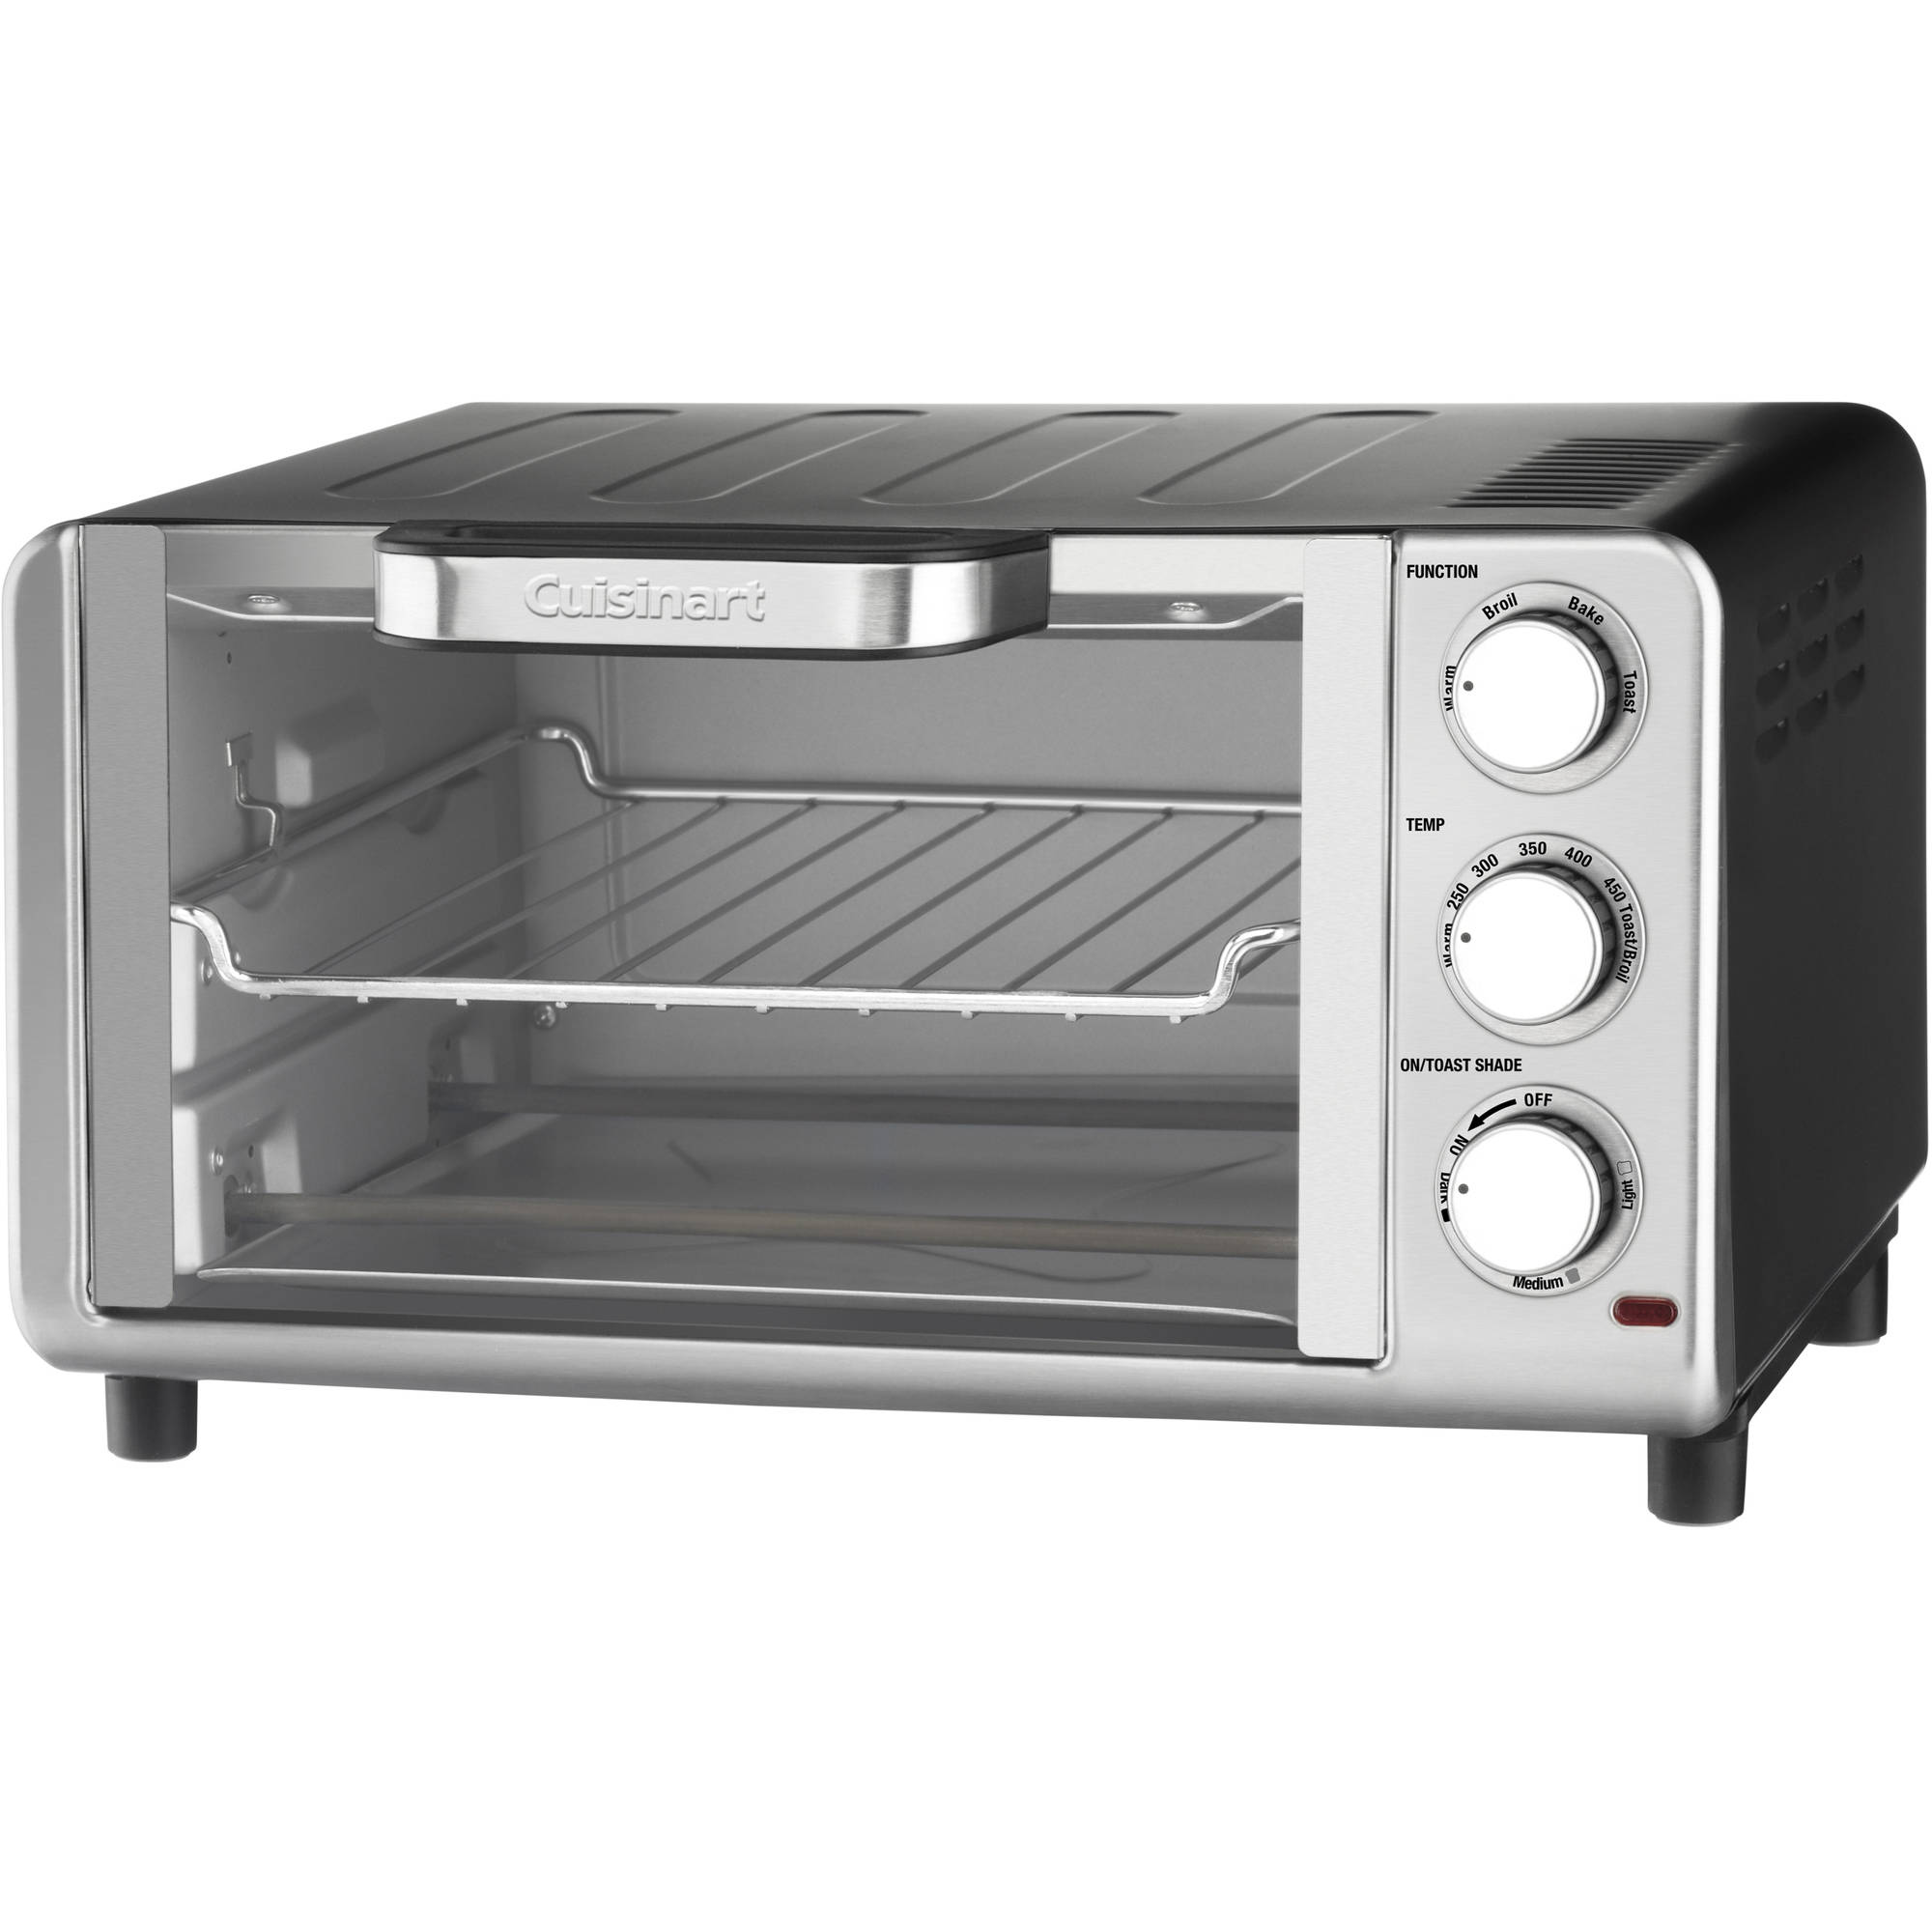 Cuisinart Compact Toaster Oven TOB-80